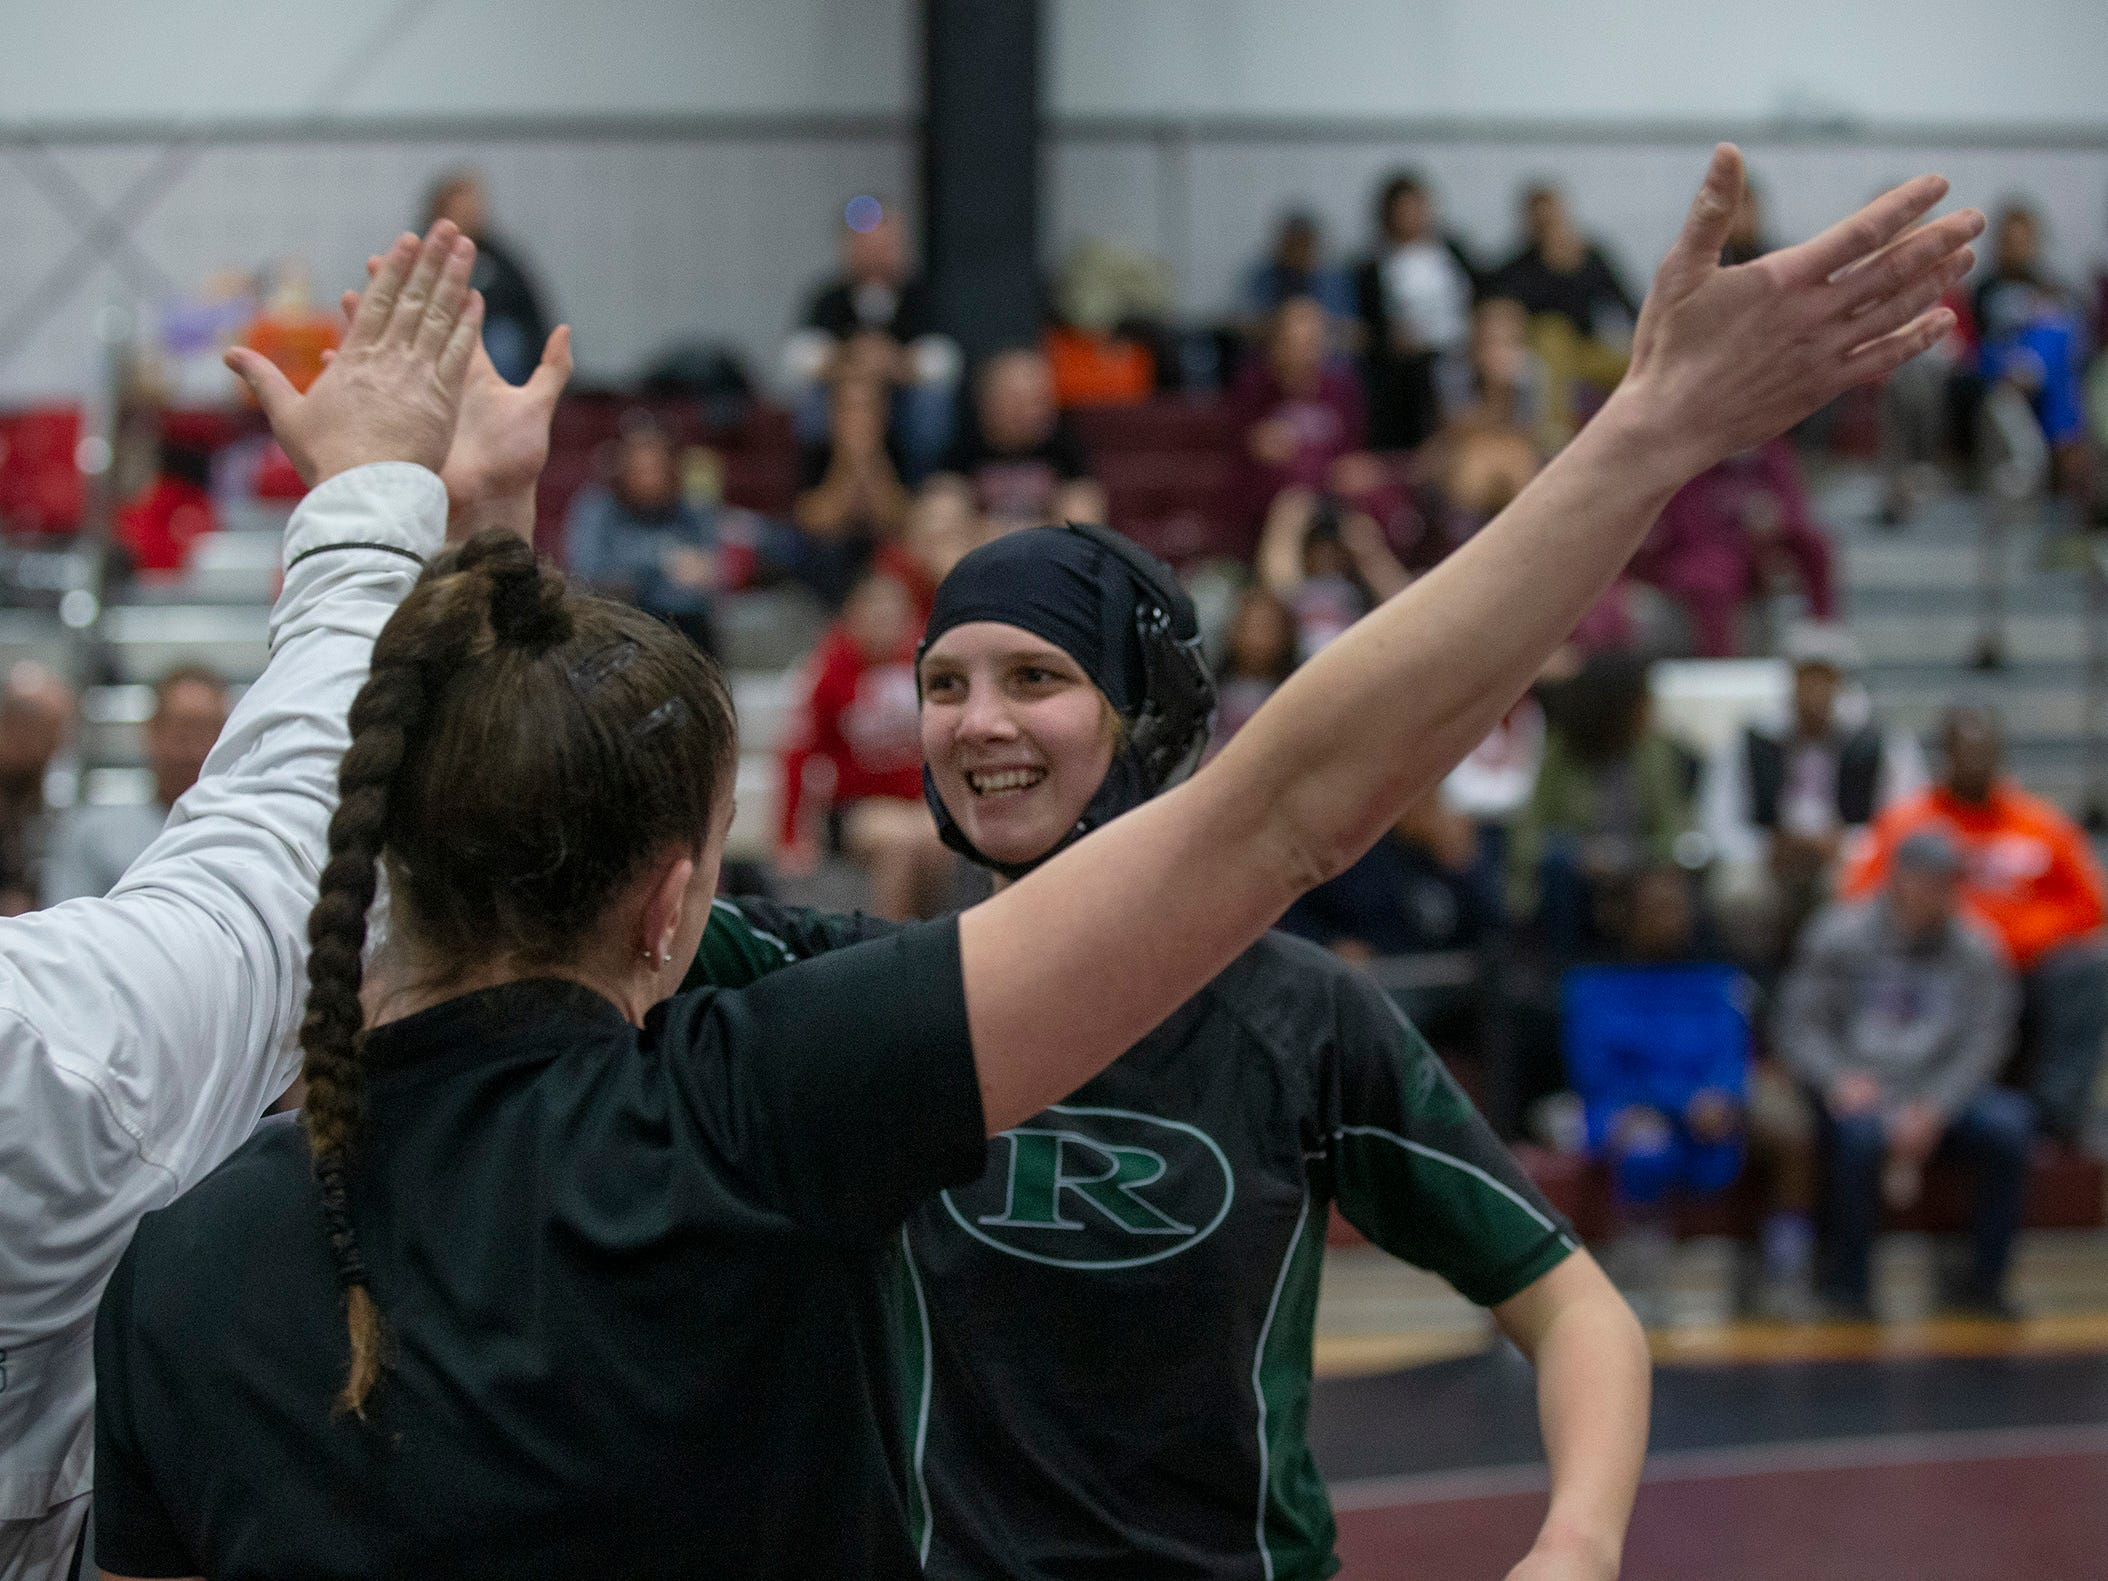 Raritan's Karena Wong  celebrates with coaches after defeaing Warren Hills Katrina Kling in the semifinals NJSIAA Girls Region Wrestling at Red Bank Regional High School in Red Bank NJ on February 17, 2019.